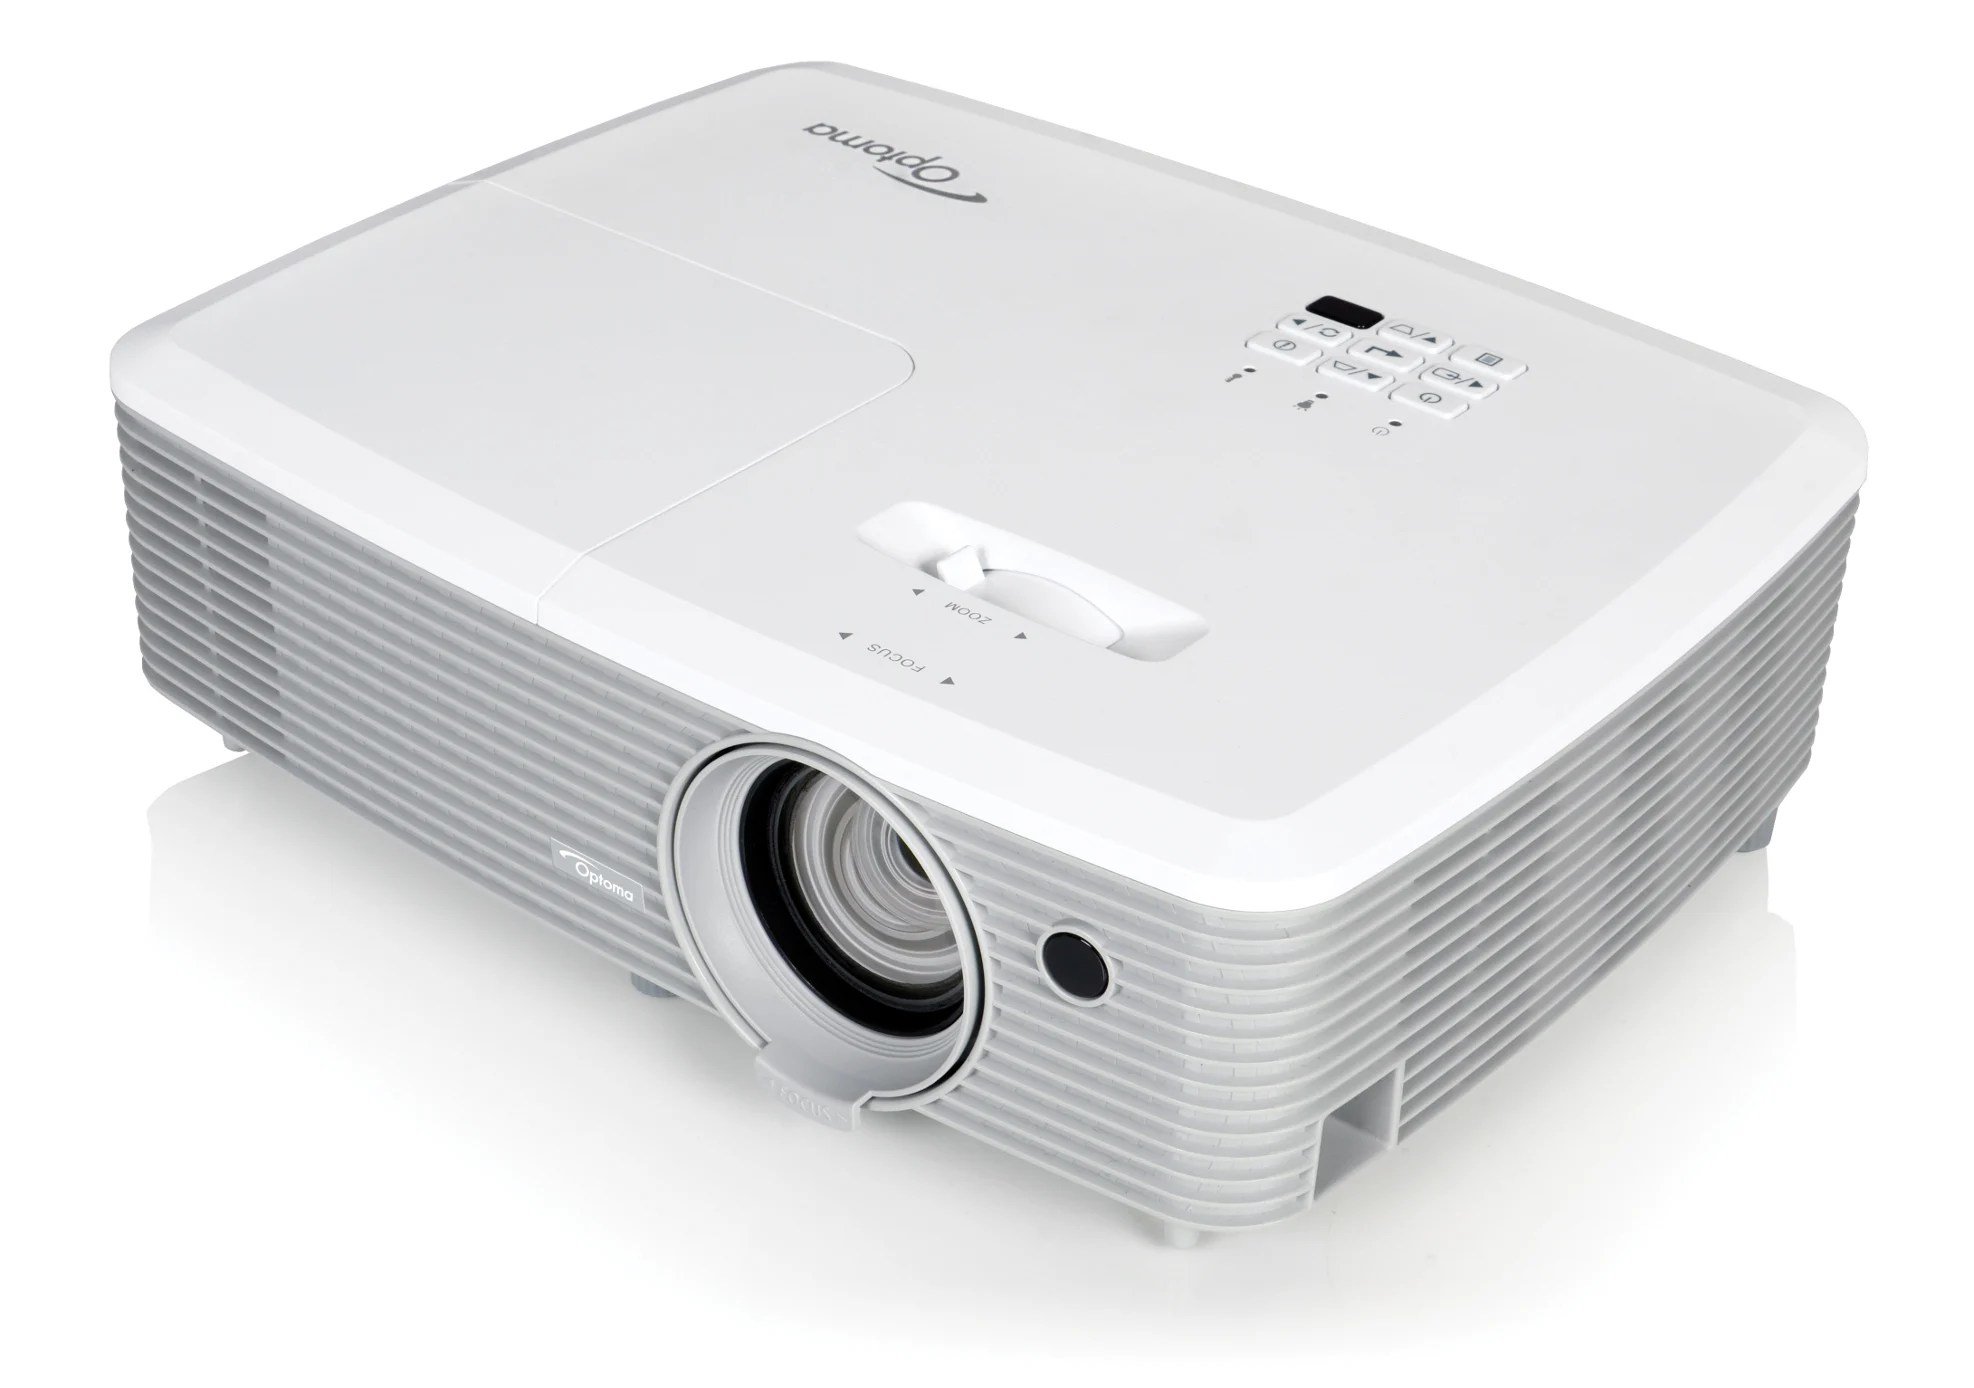 Optoma 3d Optoma Eh400 4000 Lumen 1080p Full 3d Desktop Projector Full